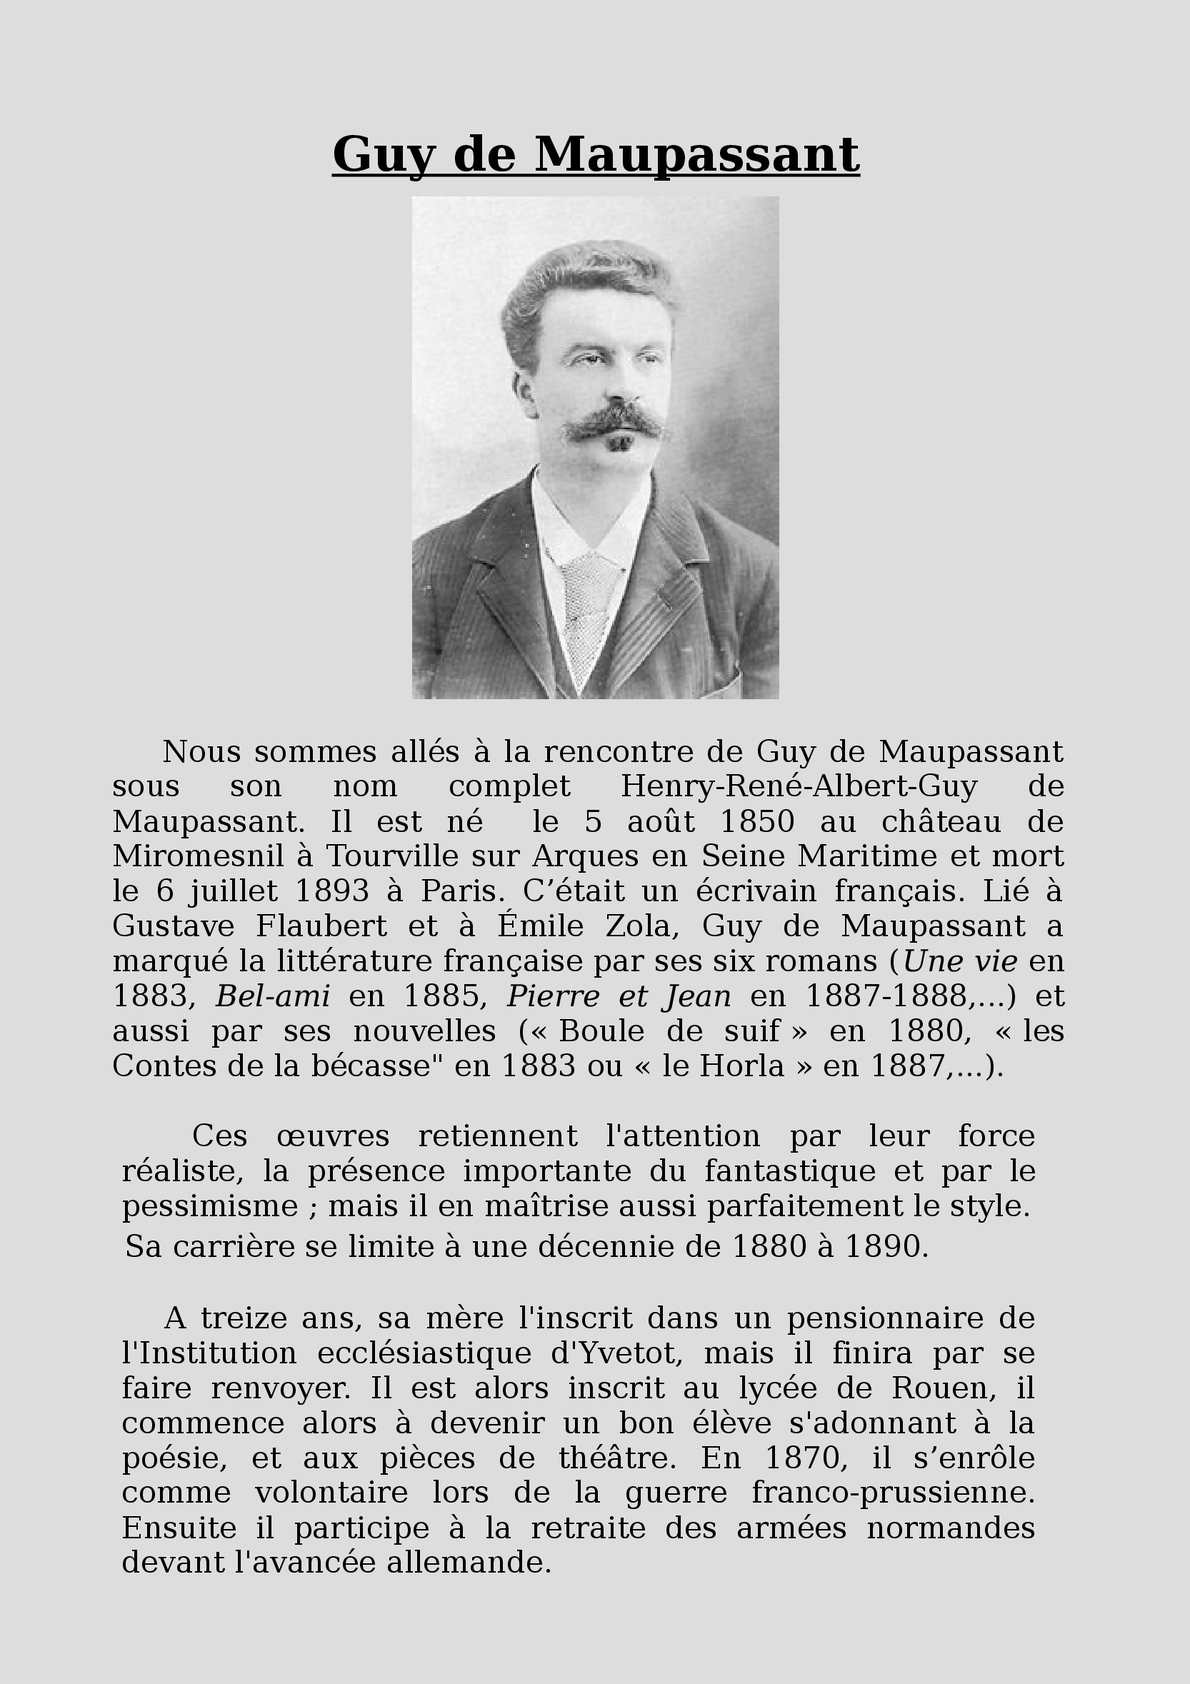 a biography of guy de maupassant a writer Read guy de maupassant 's biography, works and quotes online for free readcentralcom offers the most comprehensive collection of books and writings by guy de.